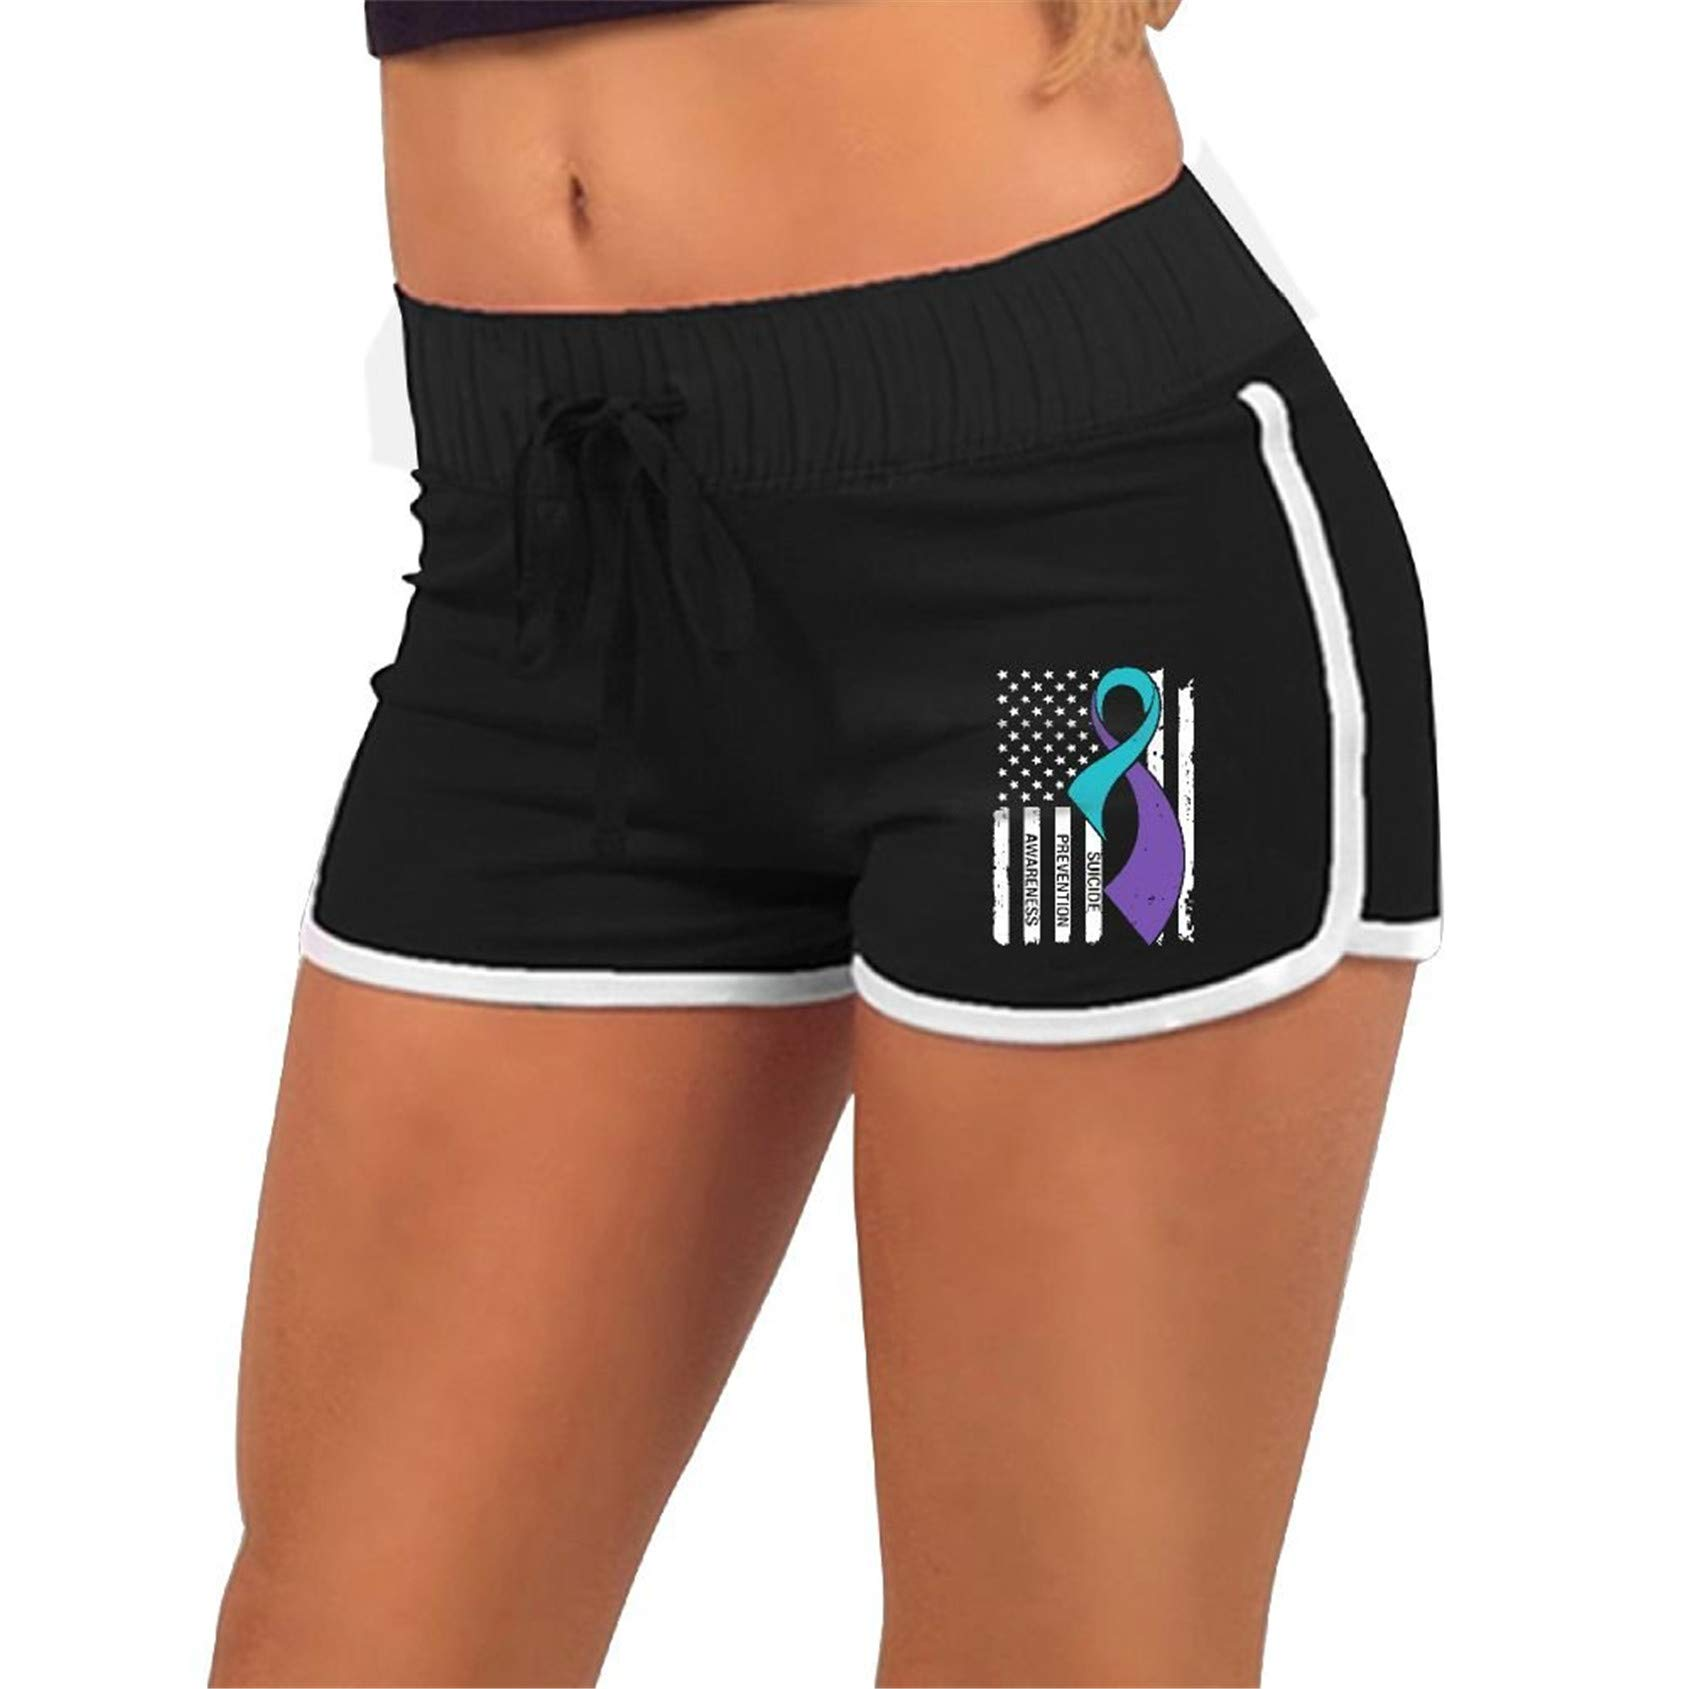 Suicide Prevention Awareness Flag,Running,Workout Shorts Pants with,Athletic Elastic Waist Womens Sports Shorts